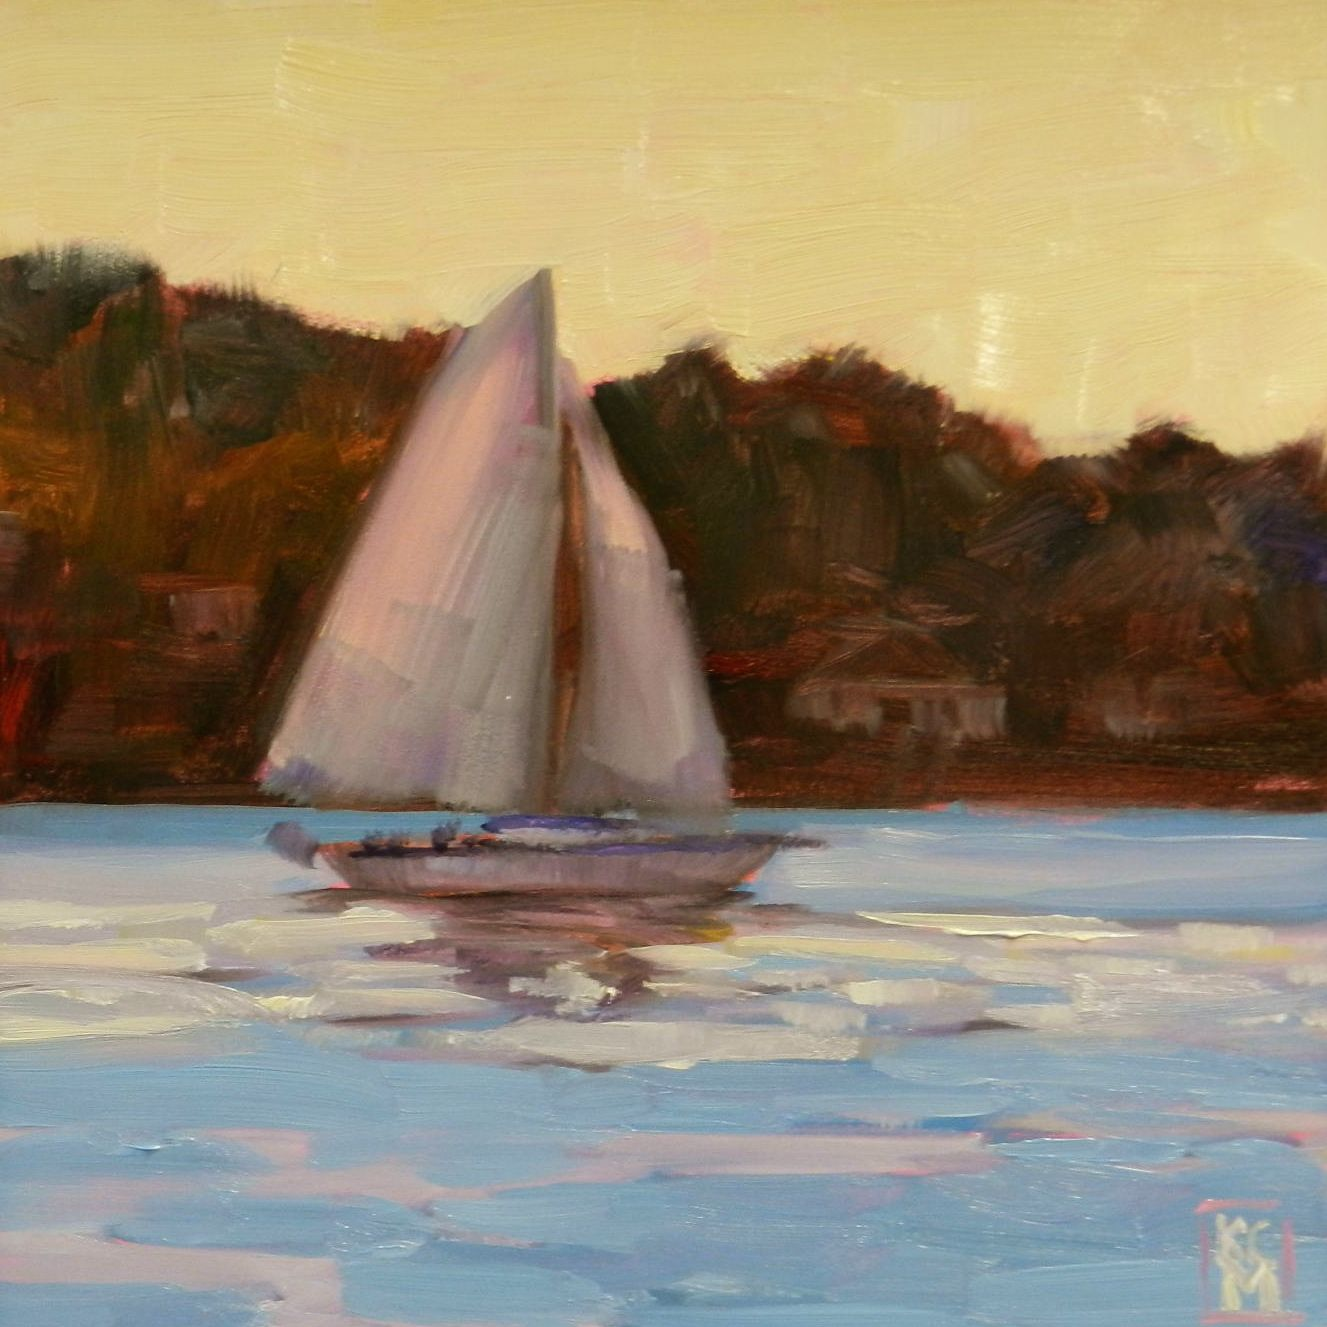 sailboats | Kelley MacDonald's Daily Paintings: Heading Home, 6x6 Inch Oil ...